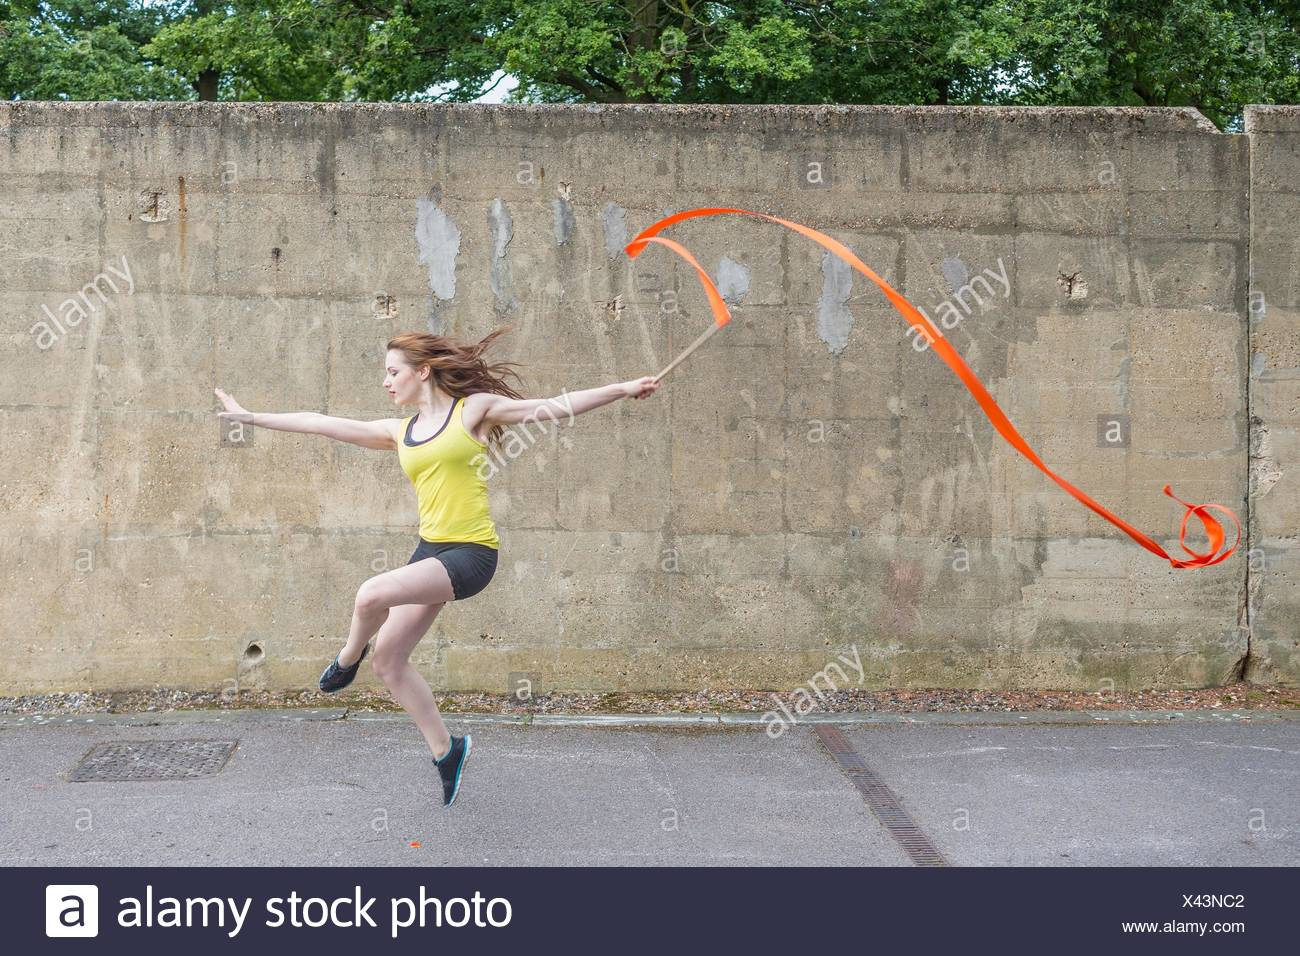 Young woman practising ribbon dance on court - Stock Image